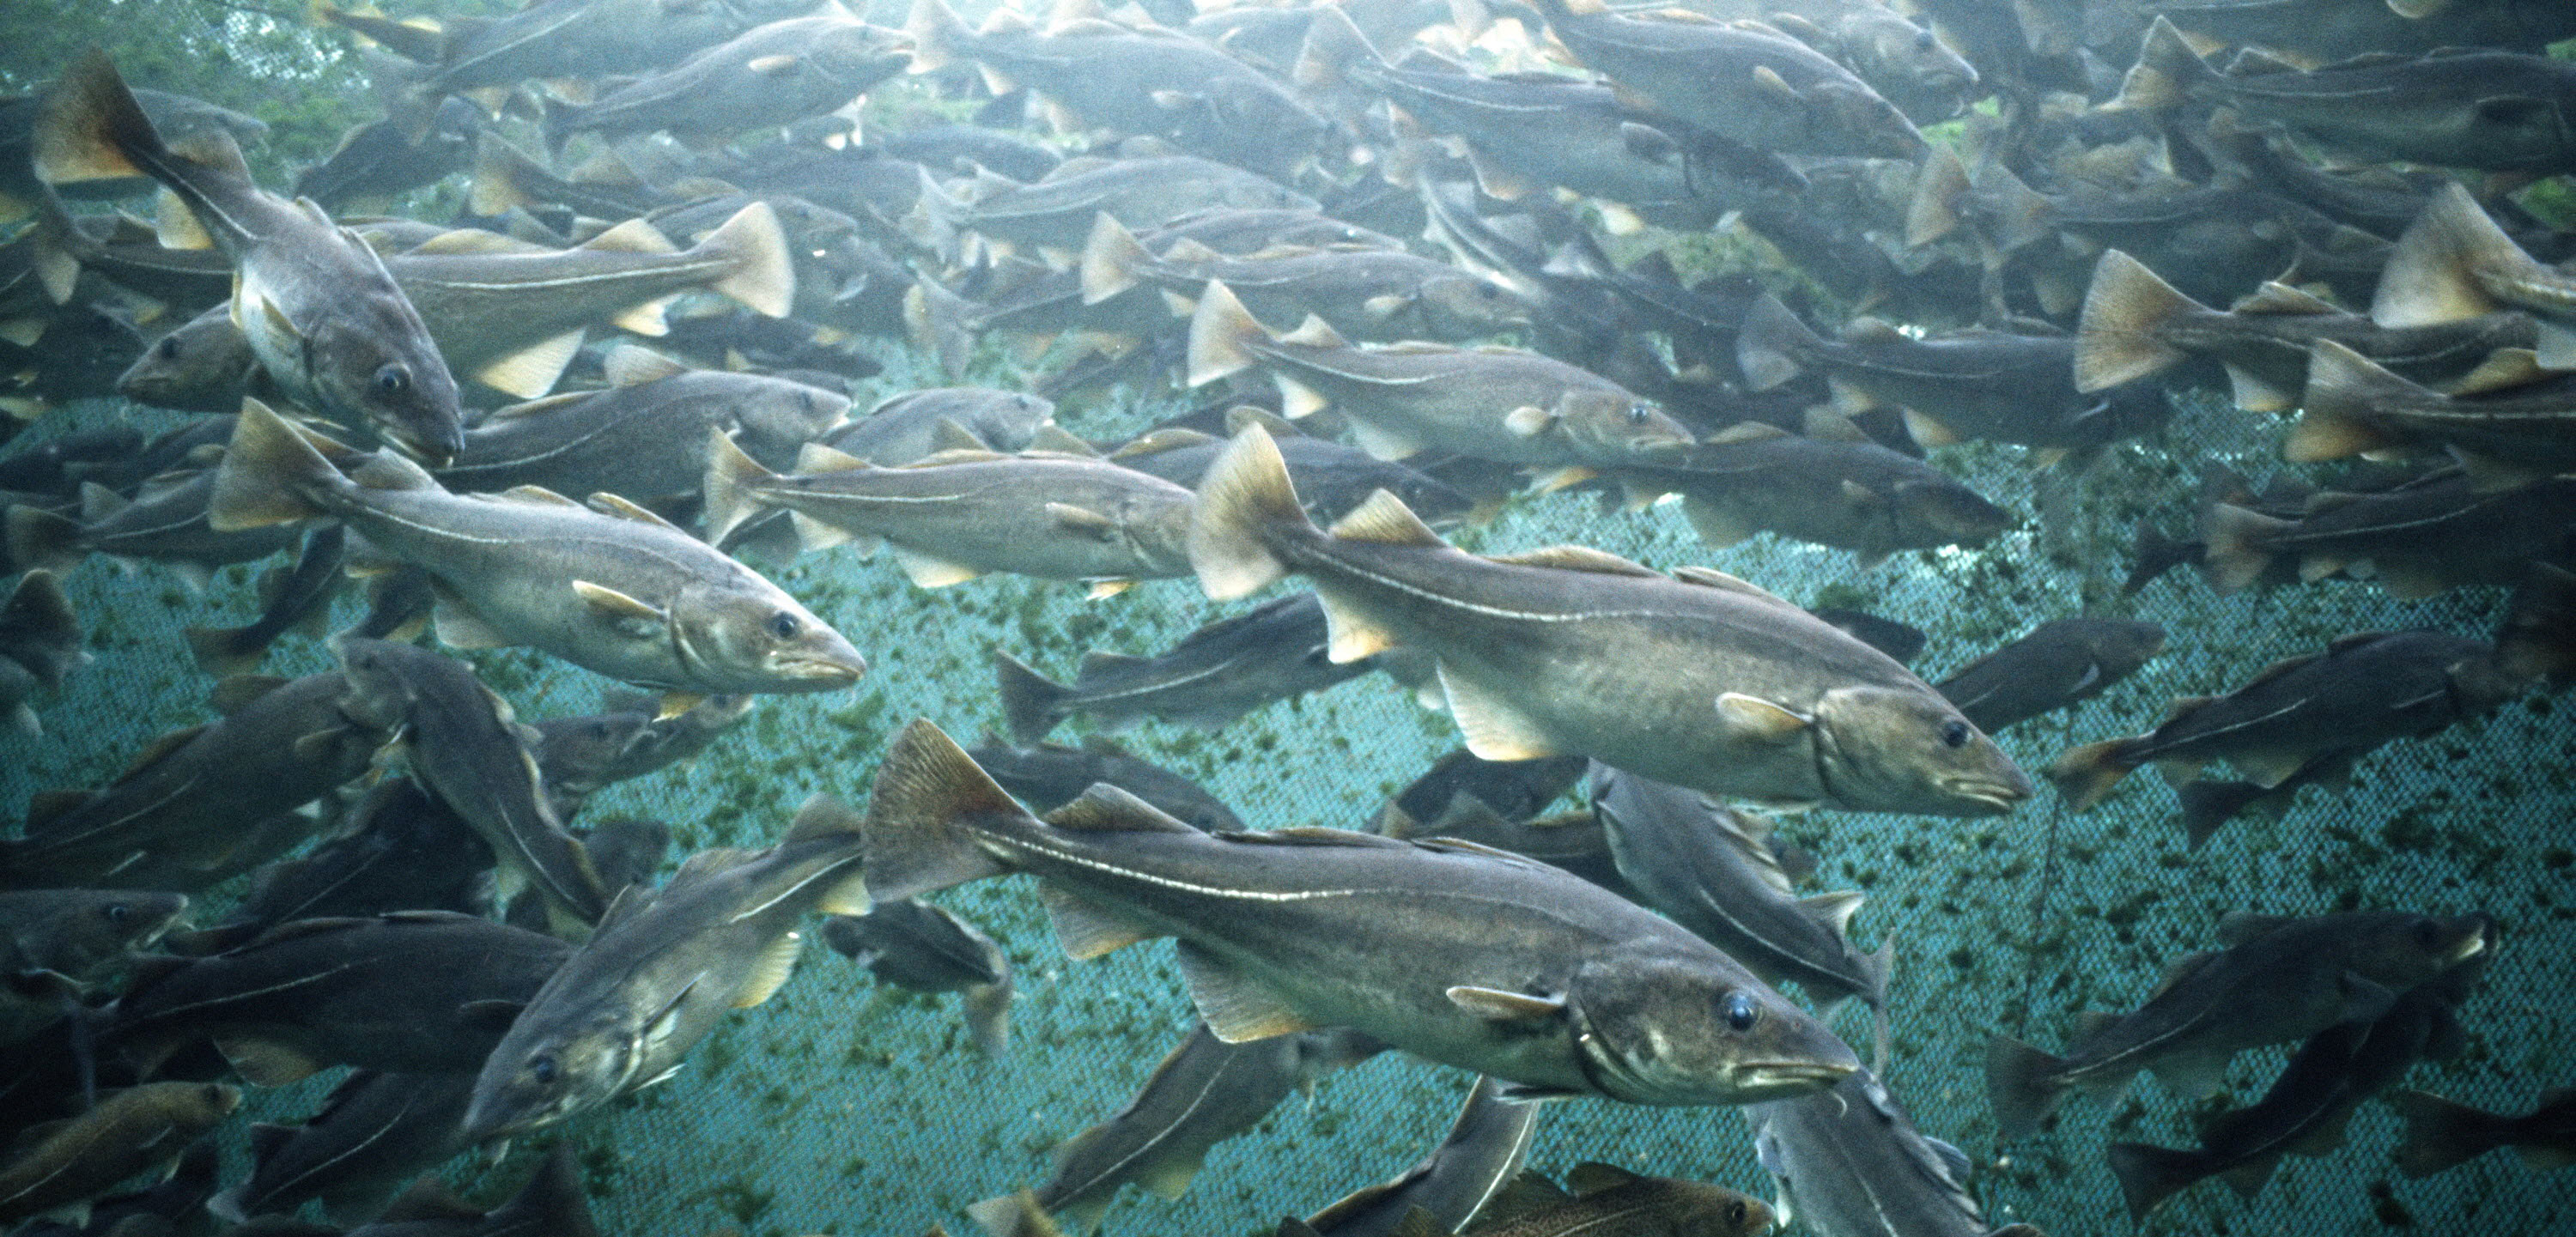 Atlantic cod (Gadus morhua) in fish farm net